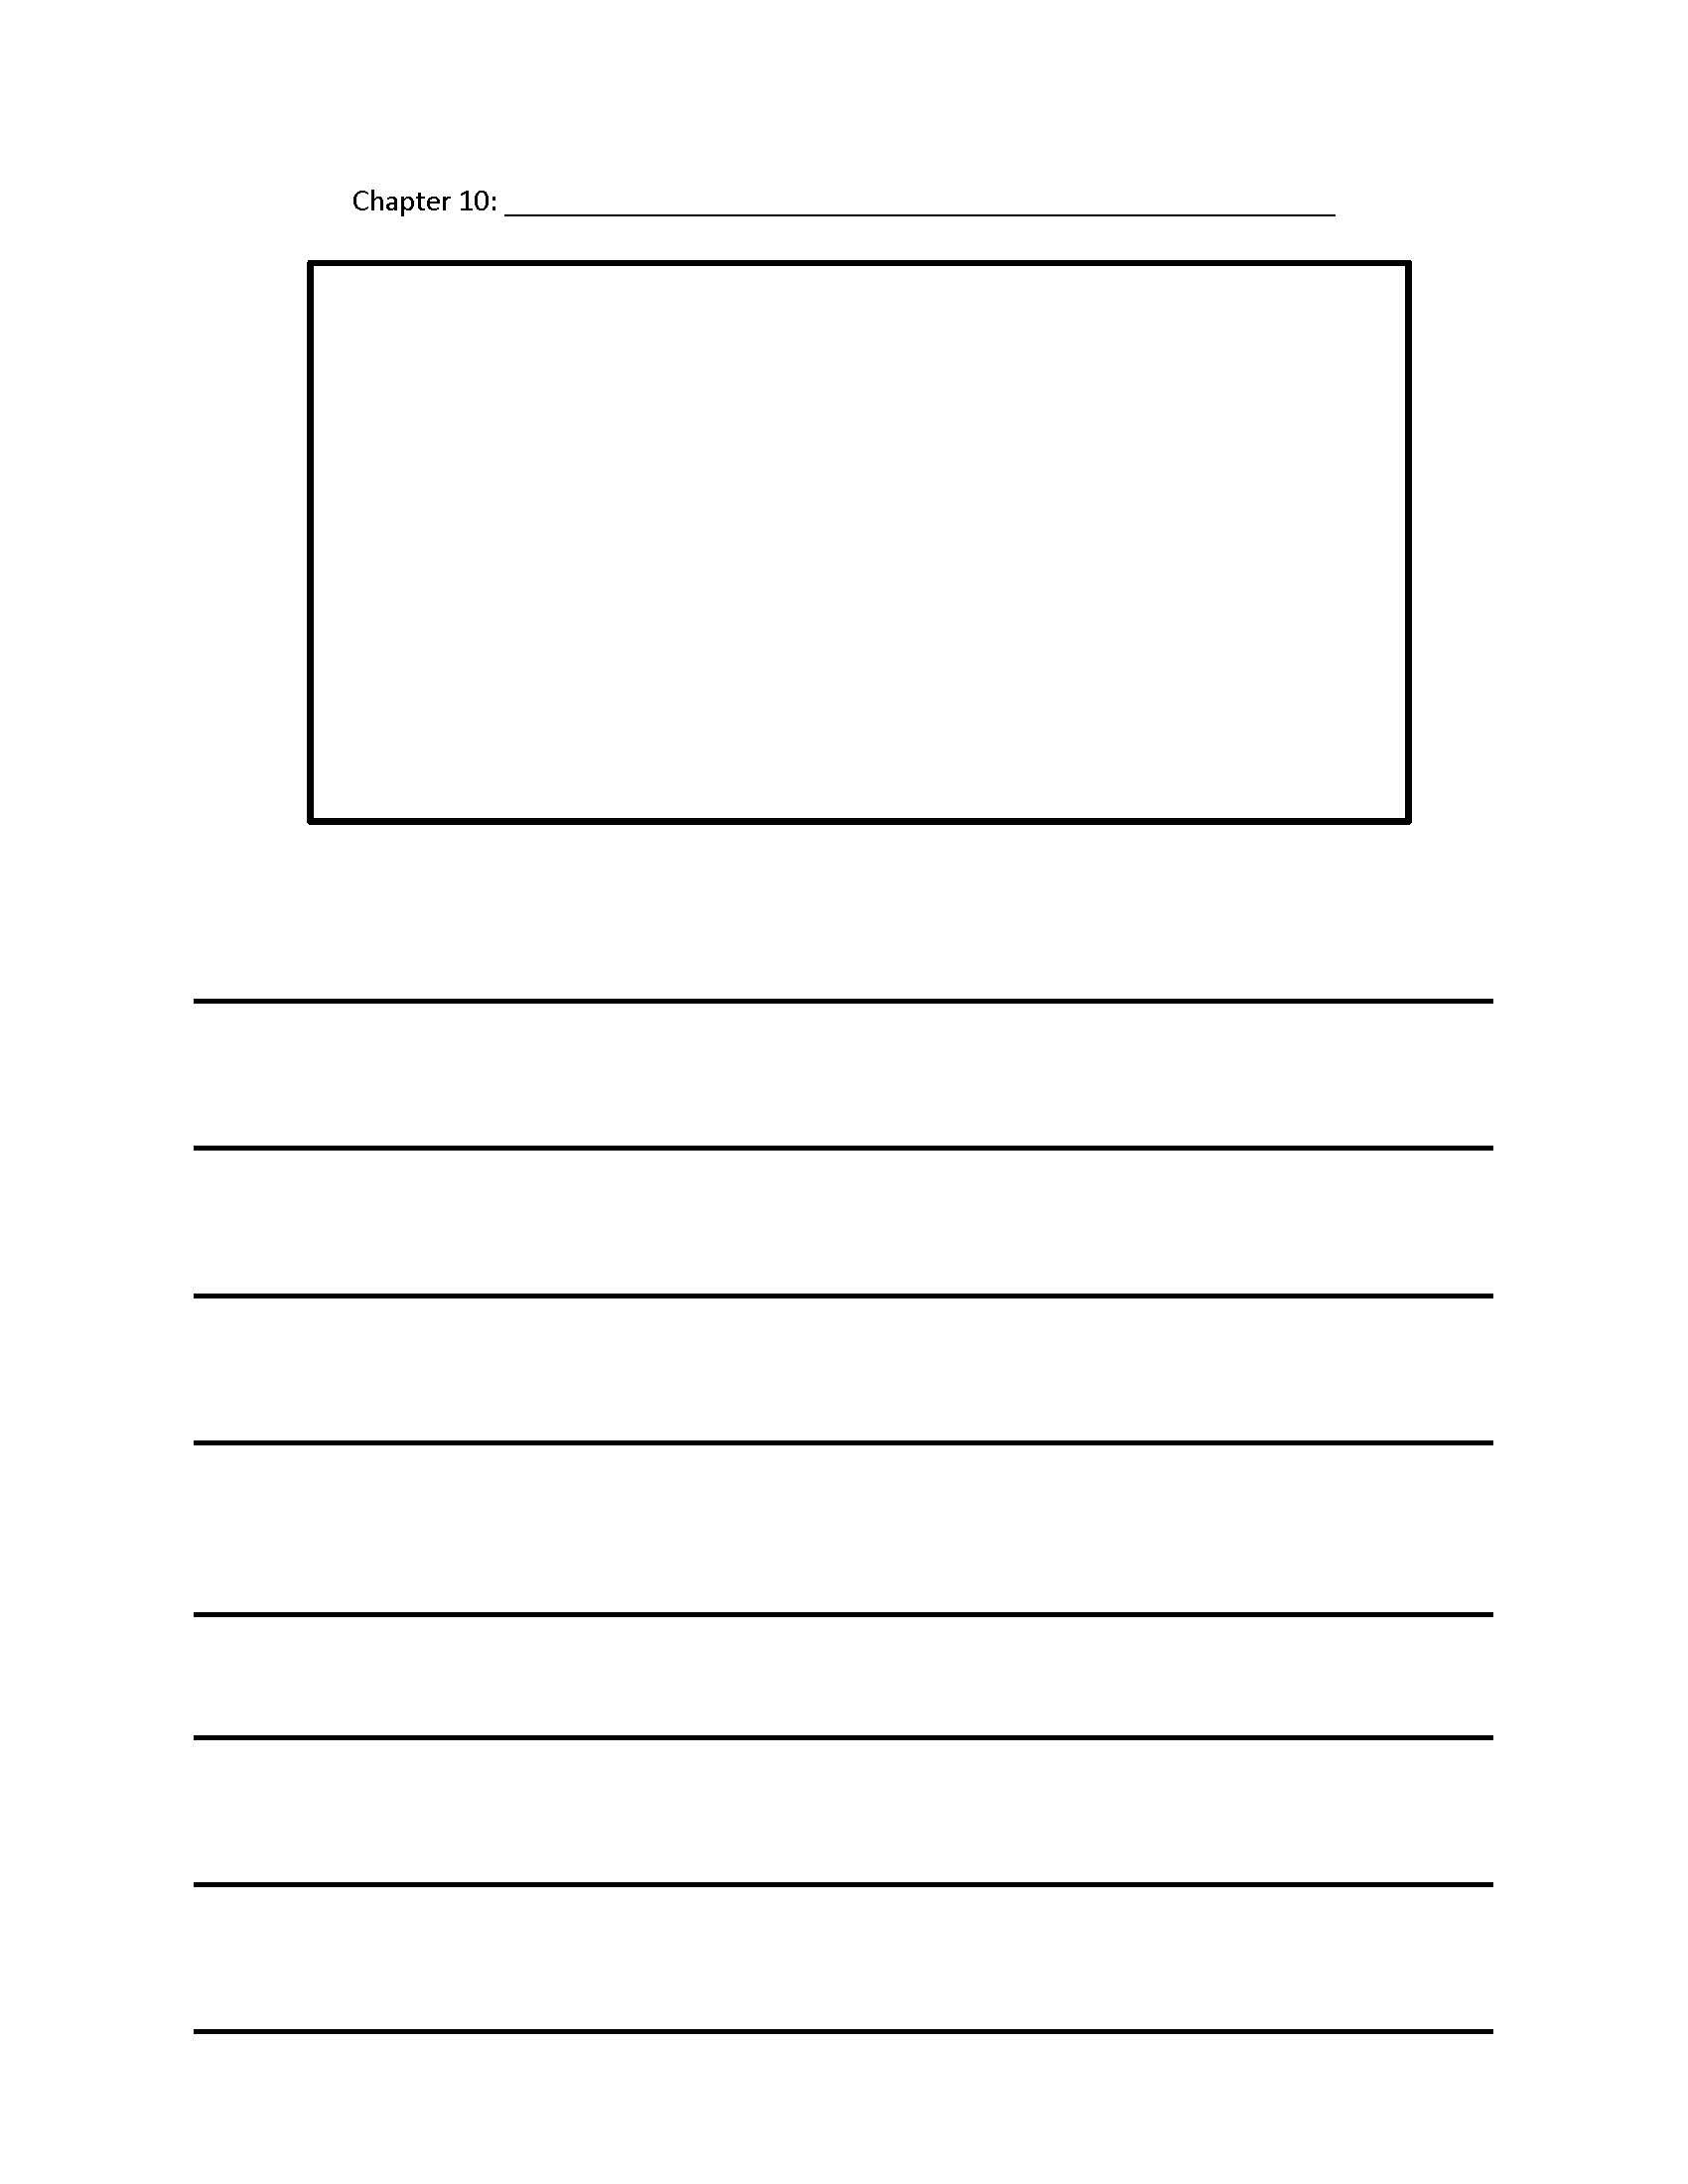 Form for Chapter 10 of a chapter book. Includes space for a illustration.